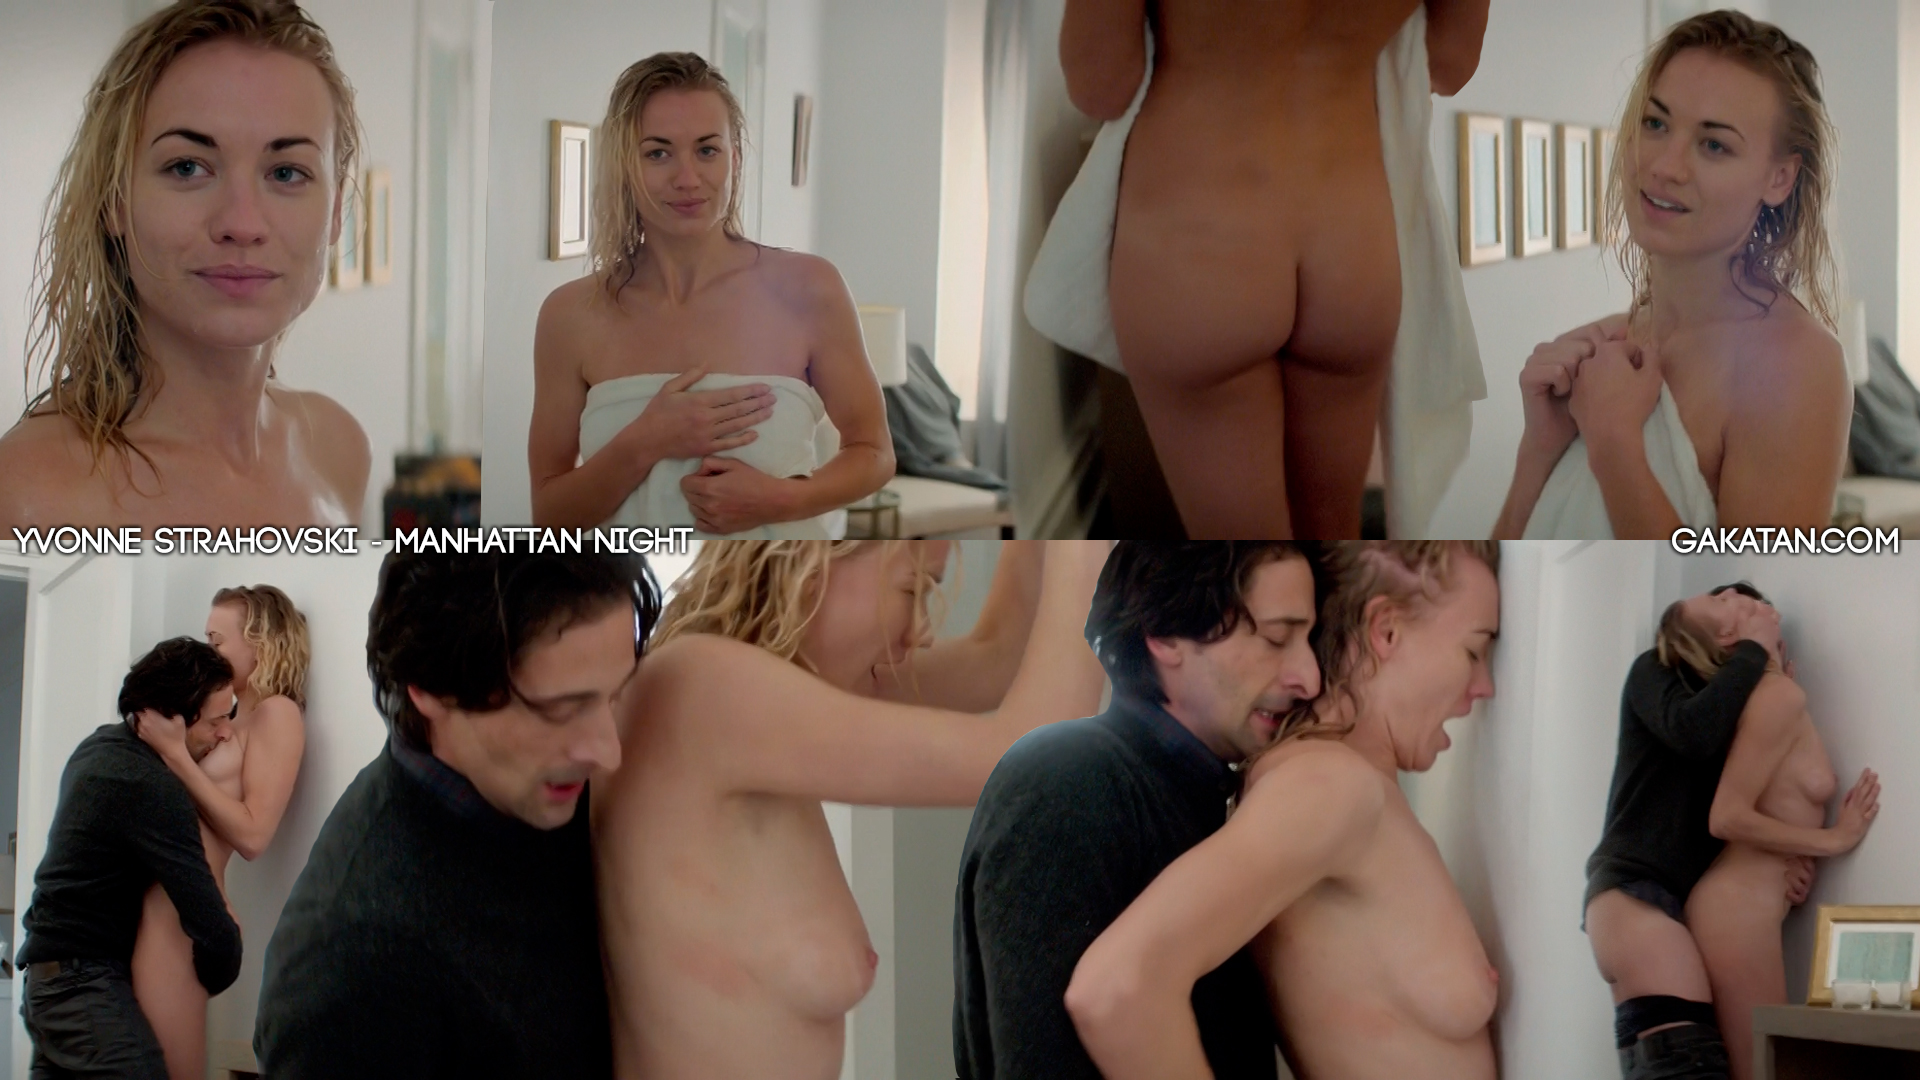 Yvonne strahovski nude manhattan night 2 2